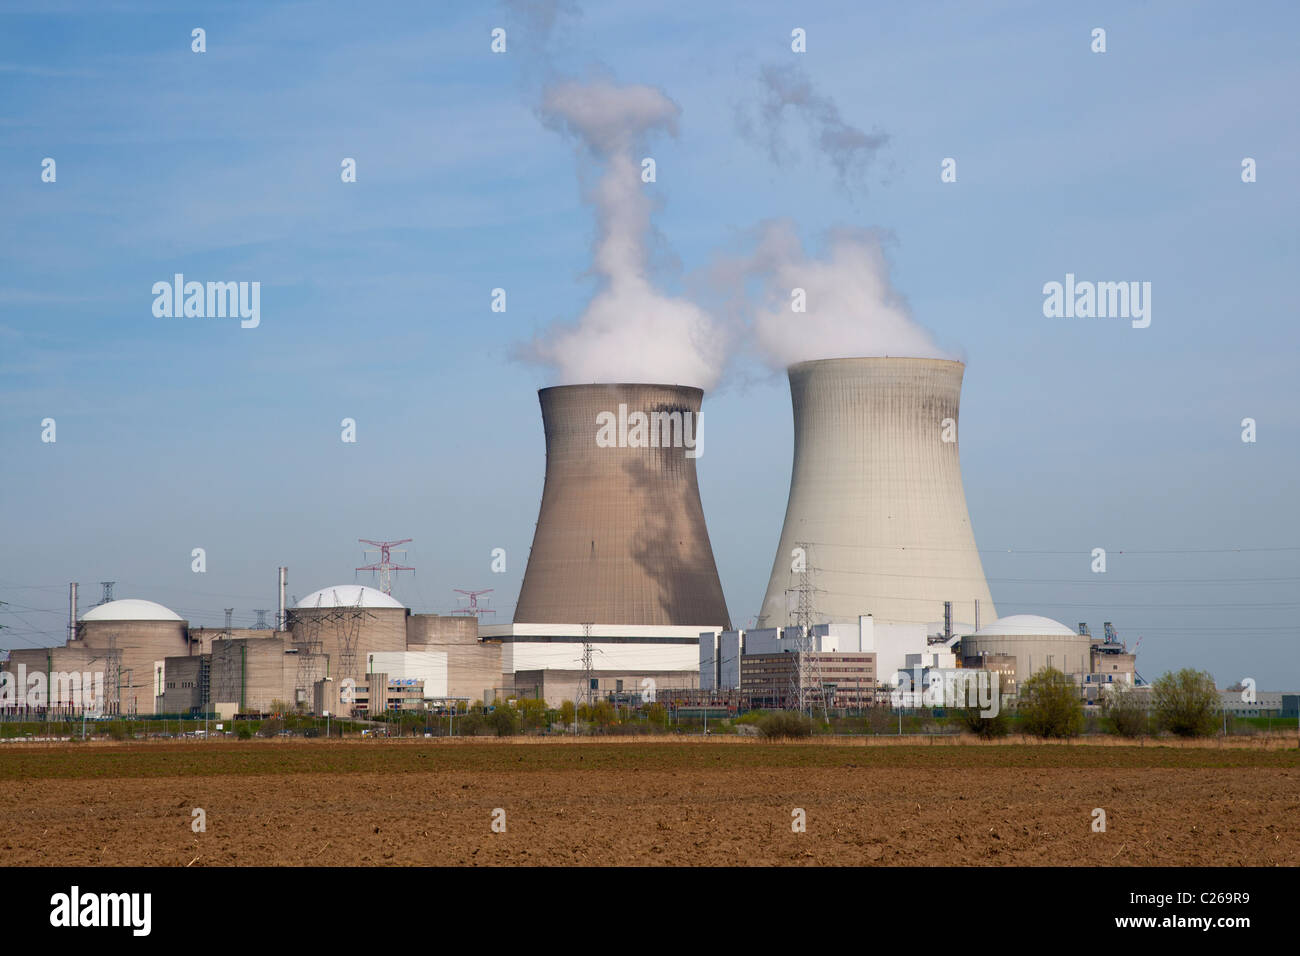 Nuclear power plant in Doel, Belgium, close to Antwerp - Stock Image